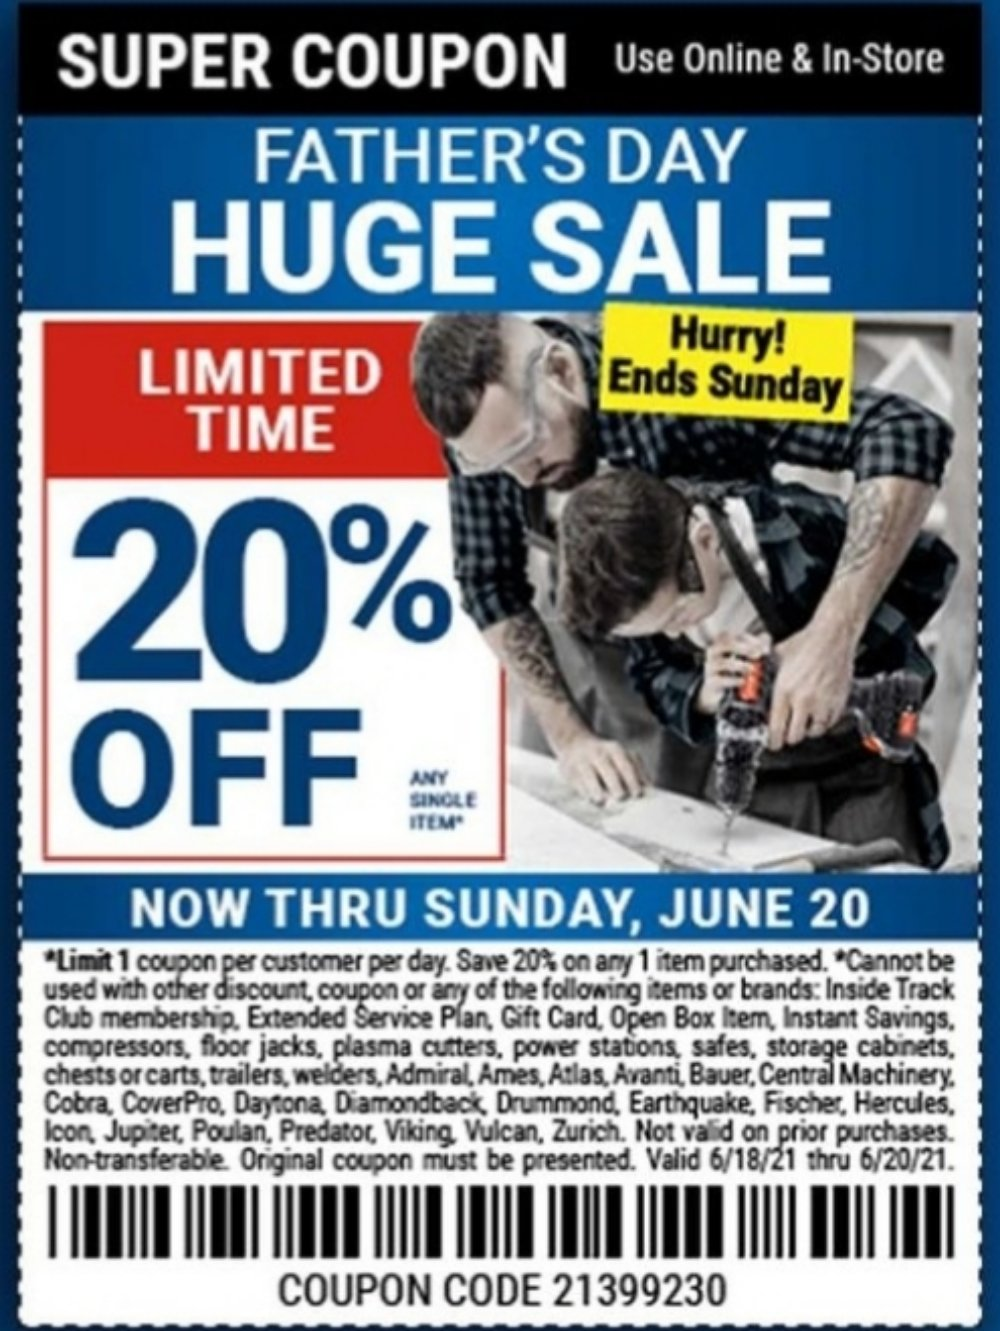 Harbor Freight Coupon, HF Coupons - Fathers Day 20% coupon